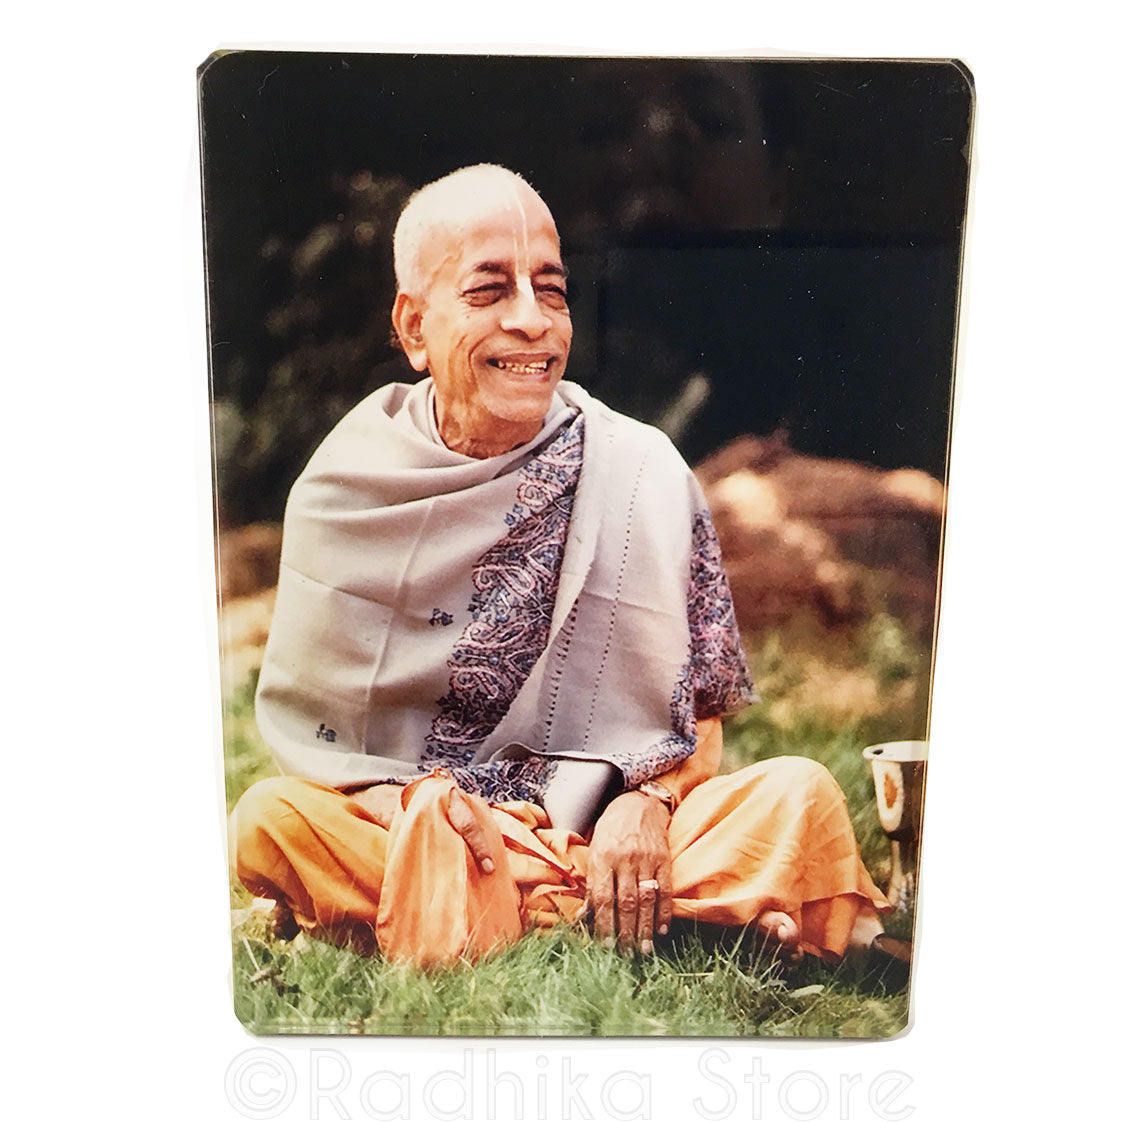 Srila Prabhupada Chanting Japa With Smile Acrylic Picture- Choose size